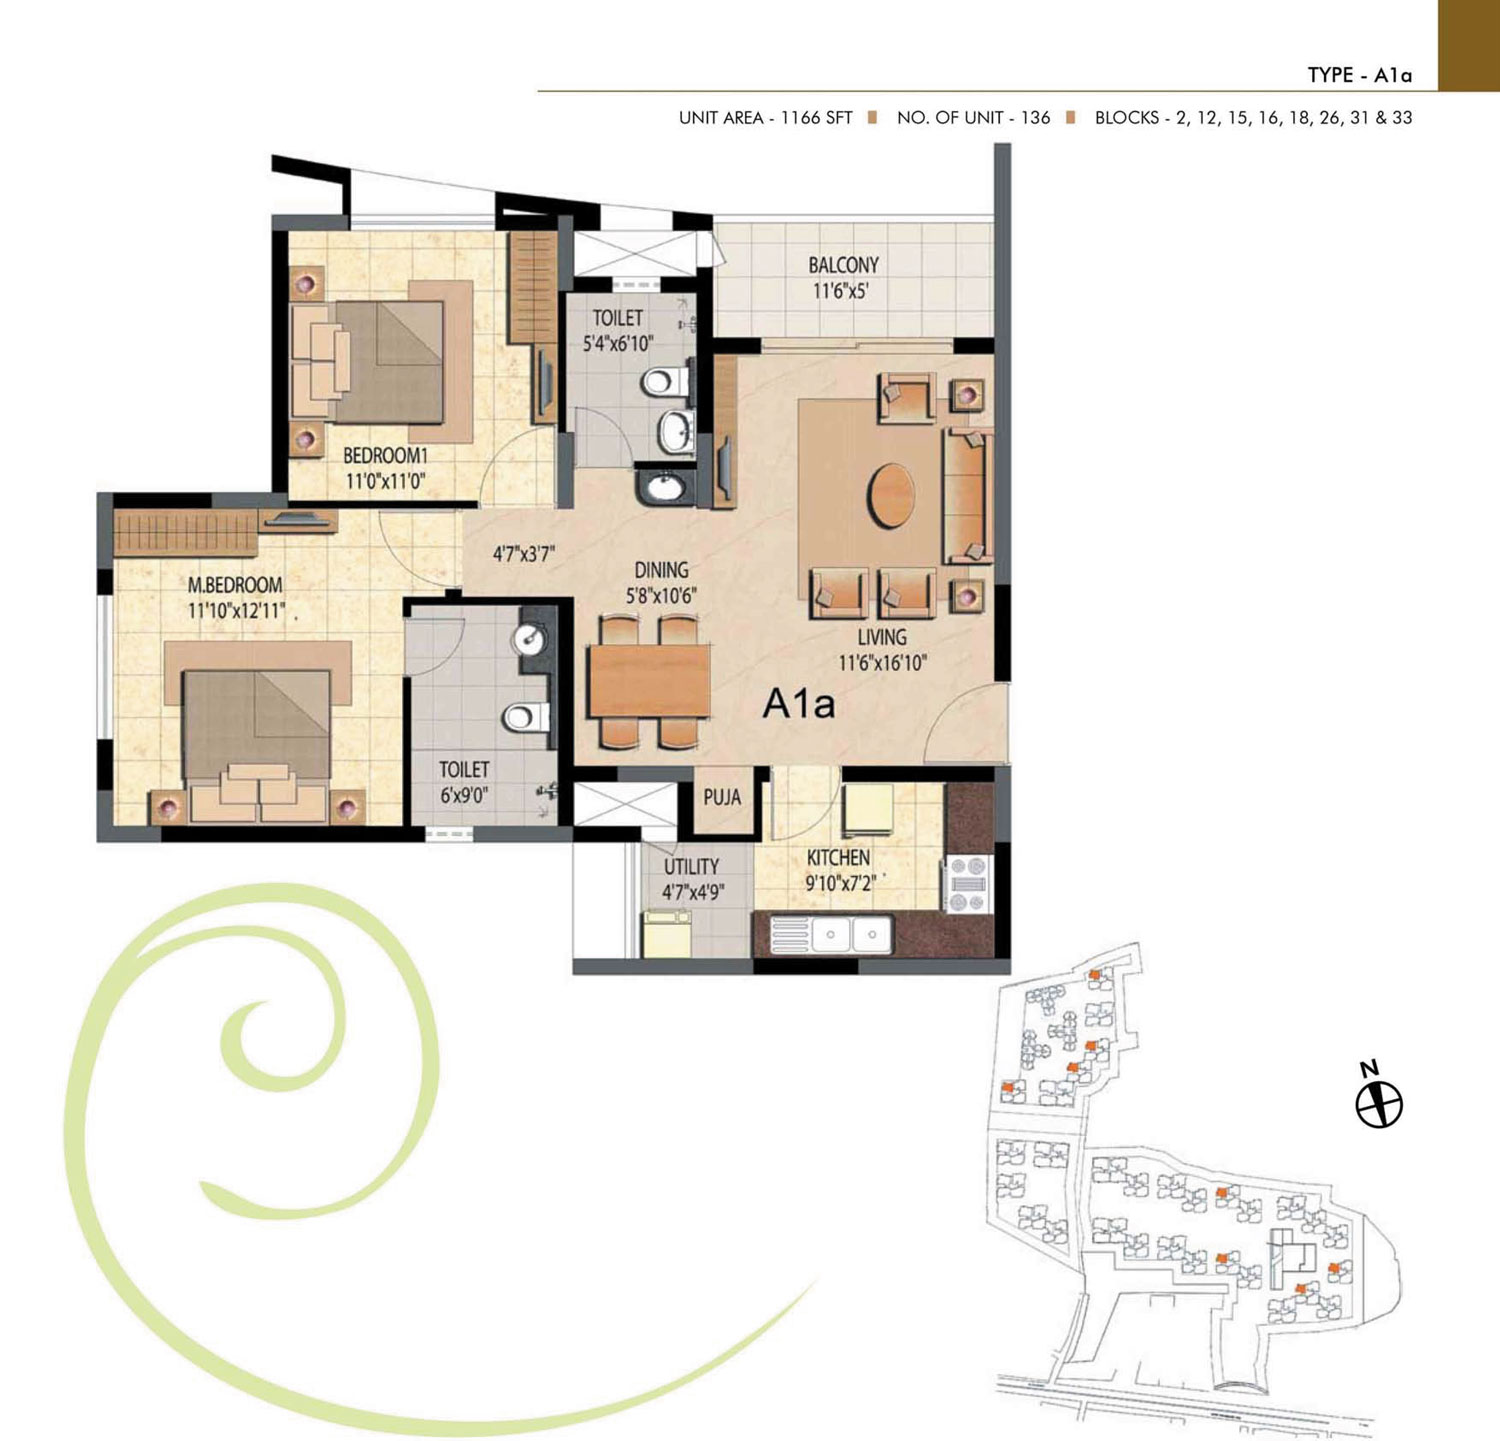 Type A1A - 2 Bed - 1166 Sq Ft